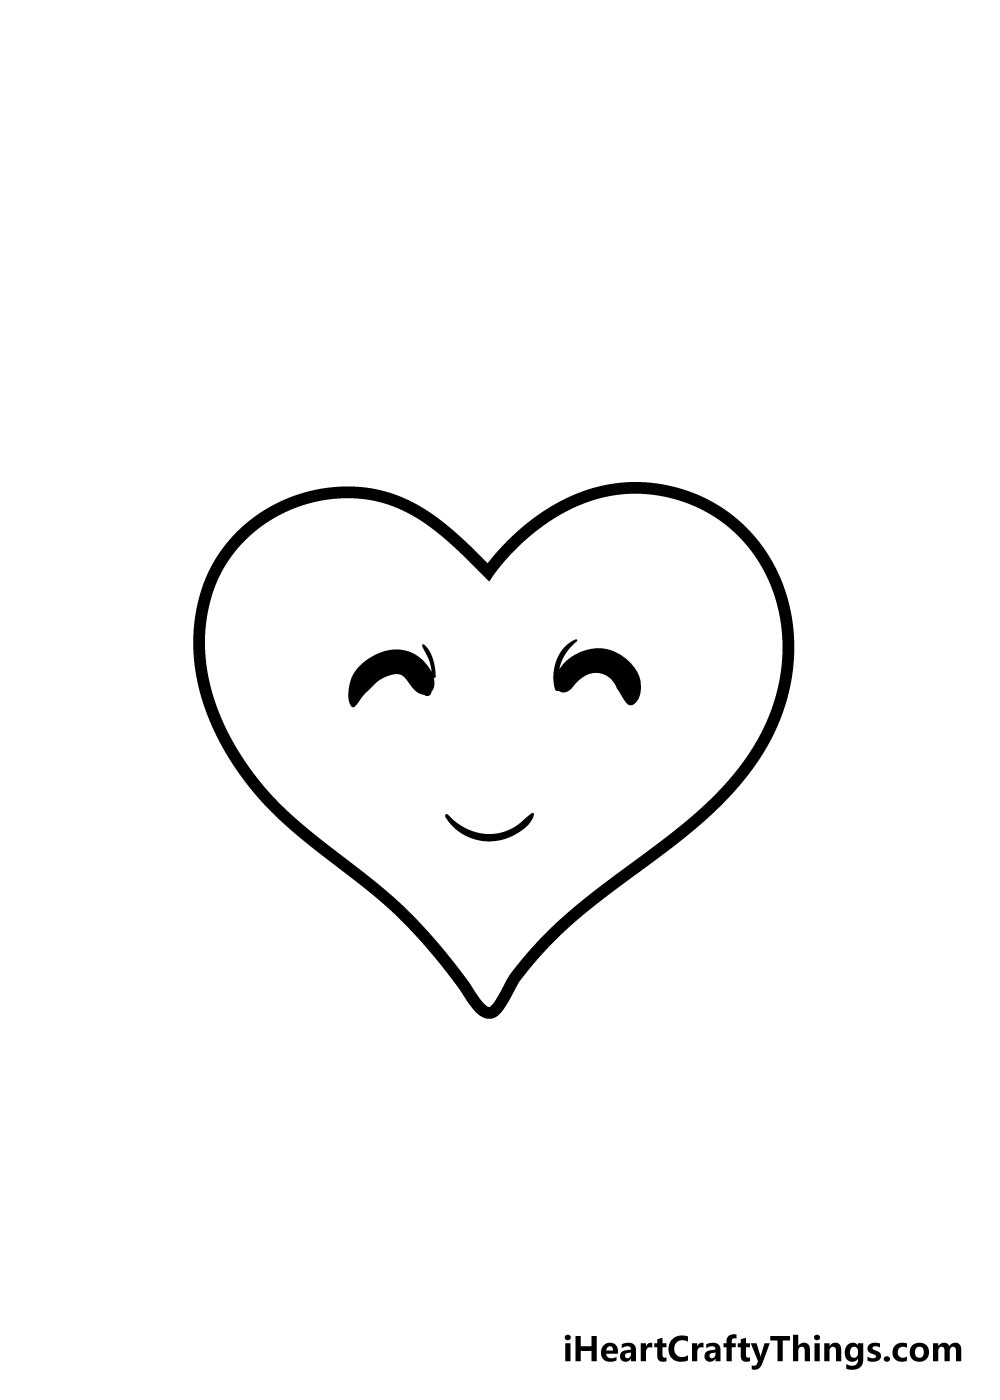 heart drawing step 6